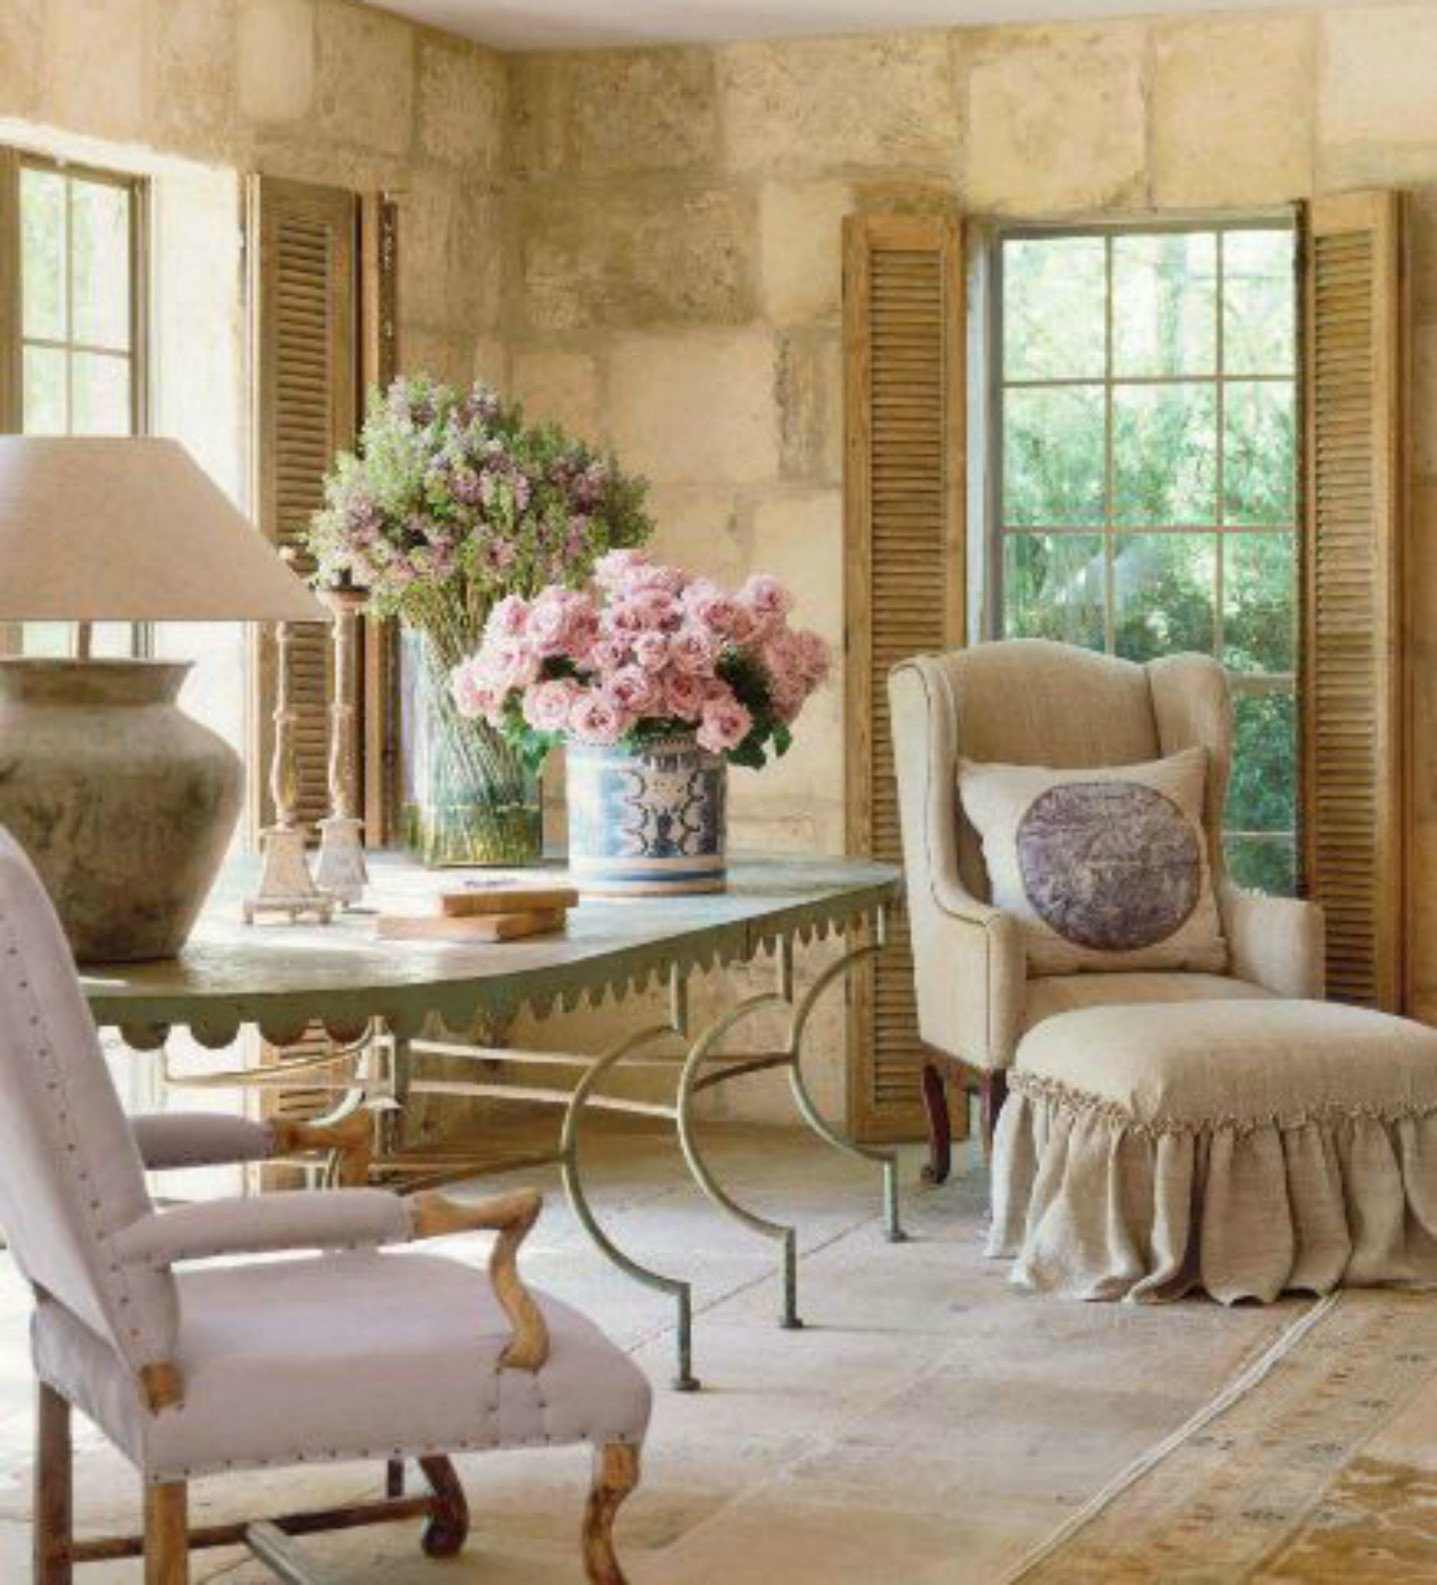 Images Of French Country Decor Unique 66 French Farmhouse Decor Inspiration Ideas Part 1 Hello Lovely